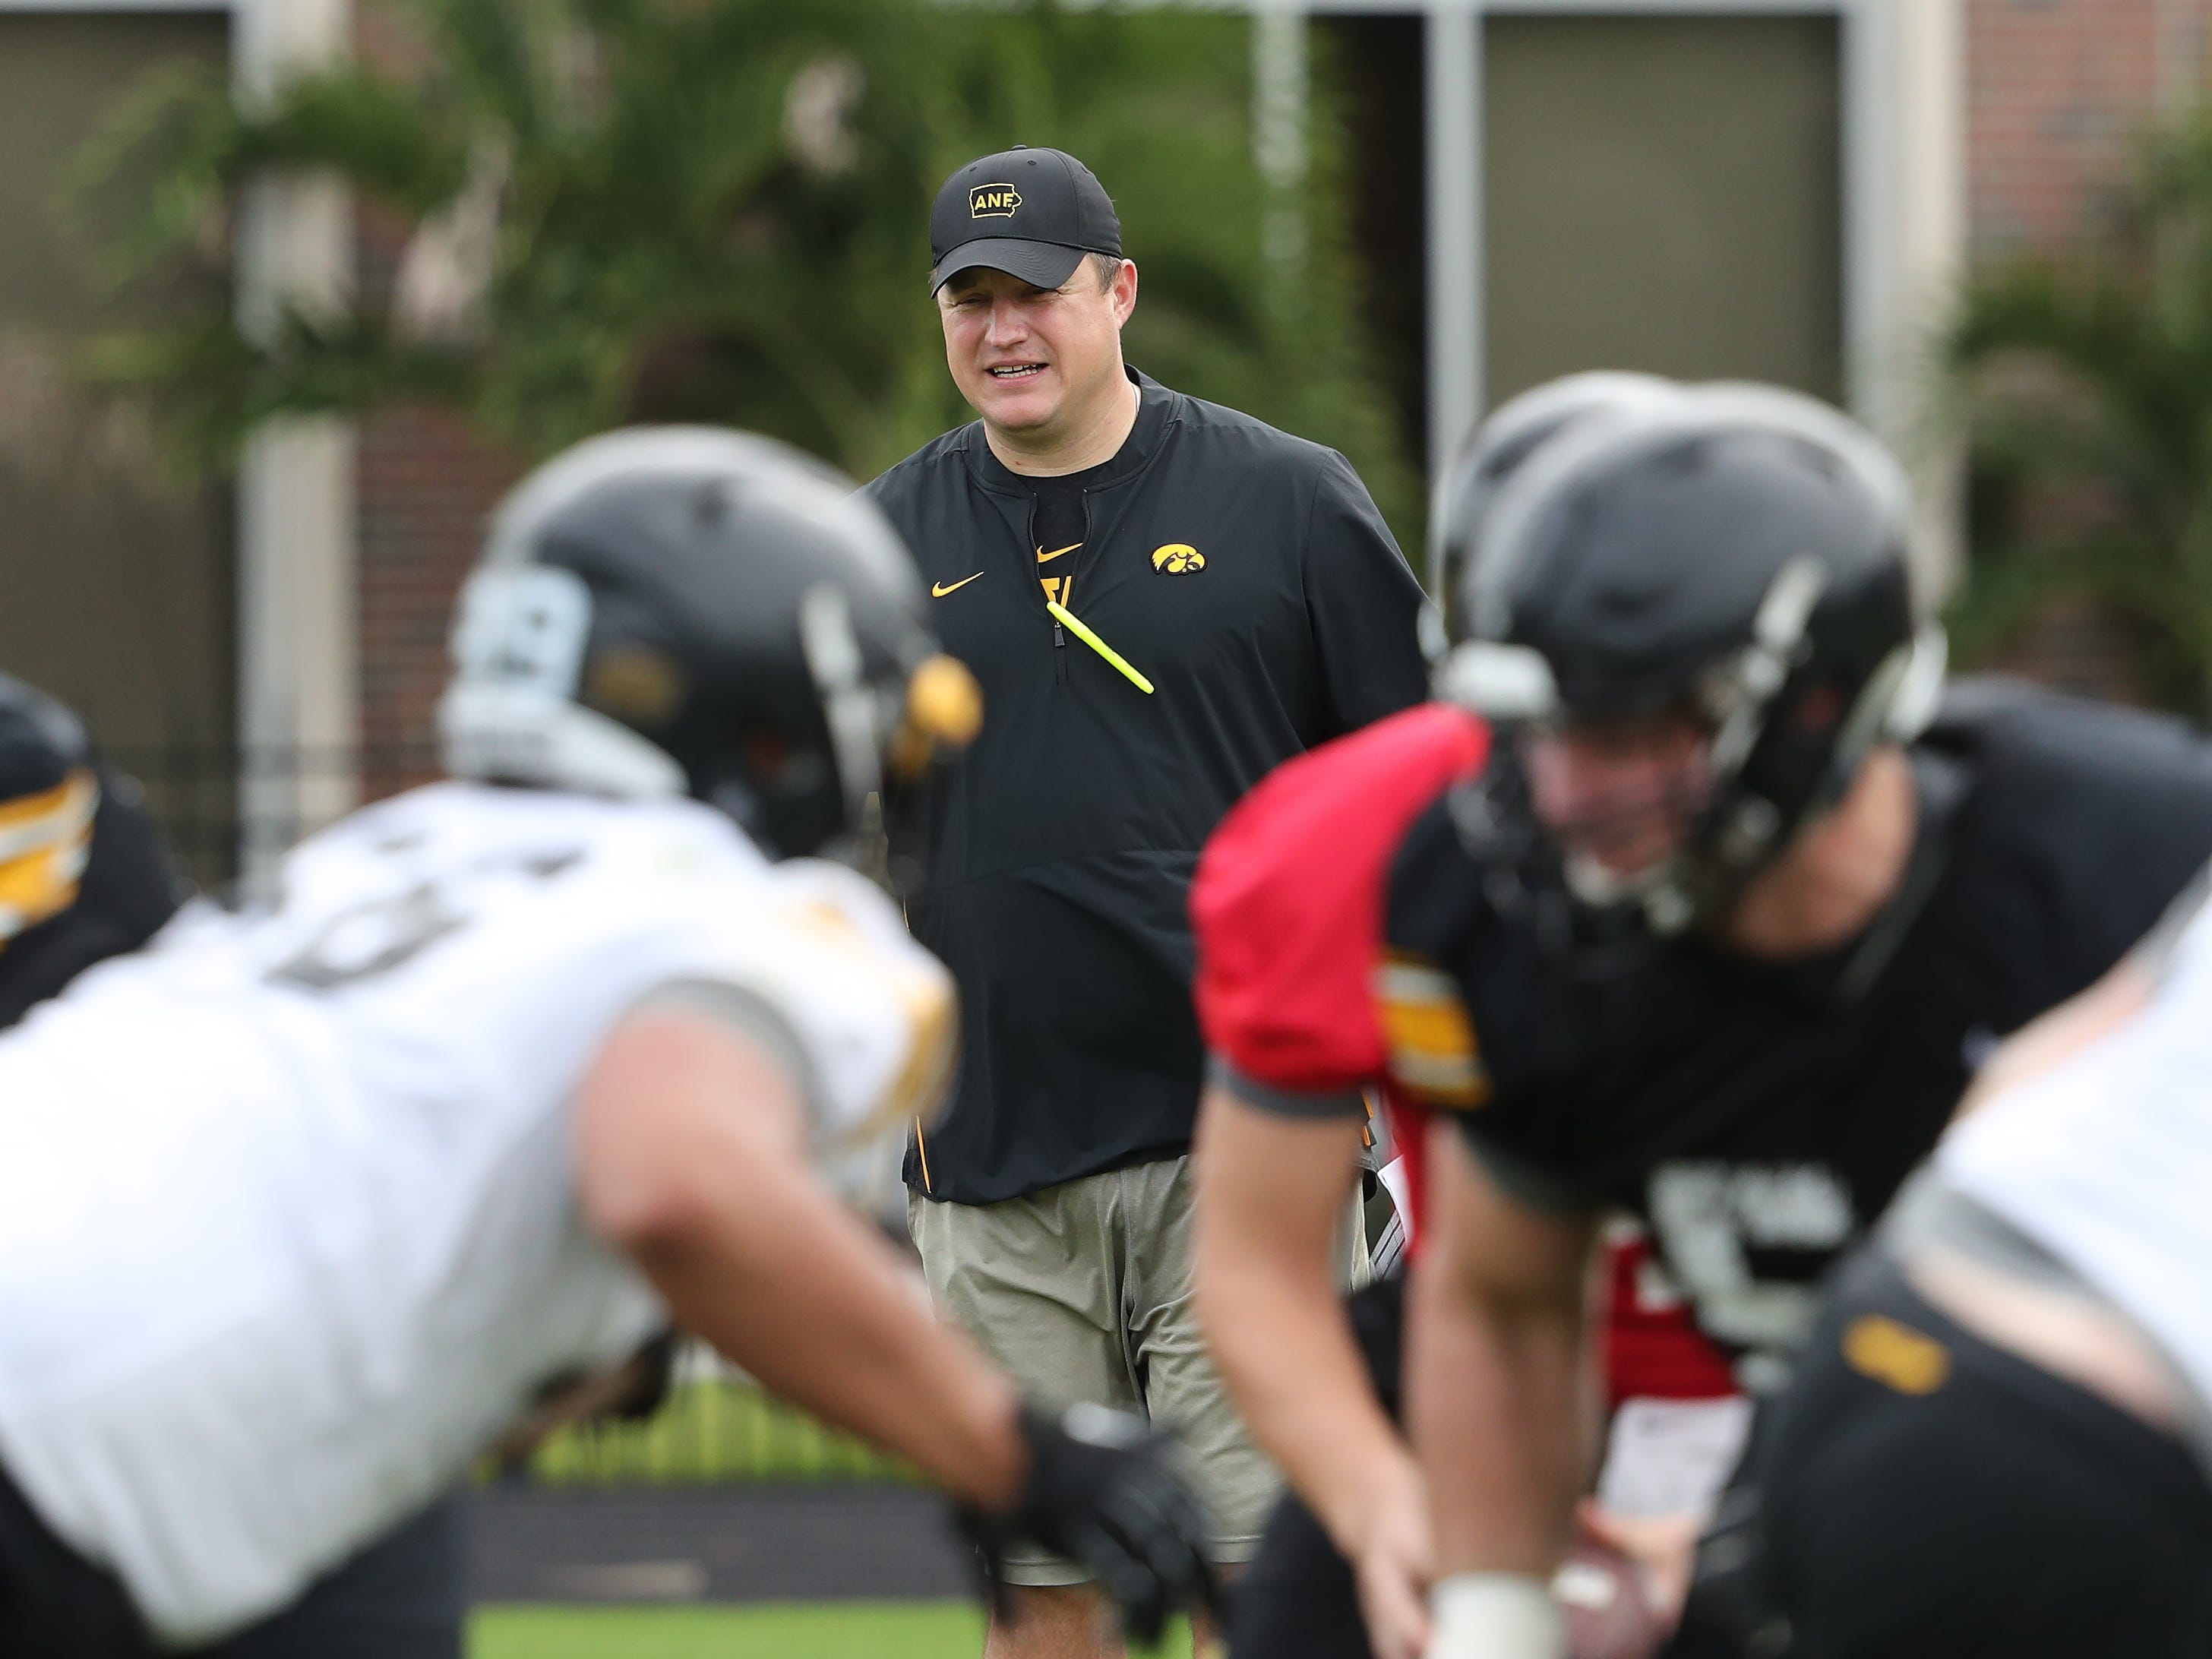 In this University of Iowa photo from Thursday's closed practice, offensive coordinator Brian Ferentz oversees his starting first unit. For more photos, visit HawkeyeSports.com.